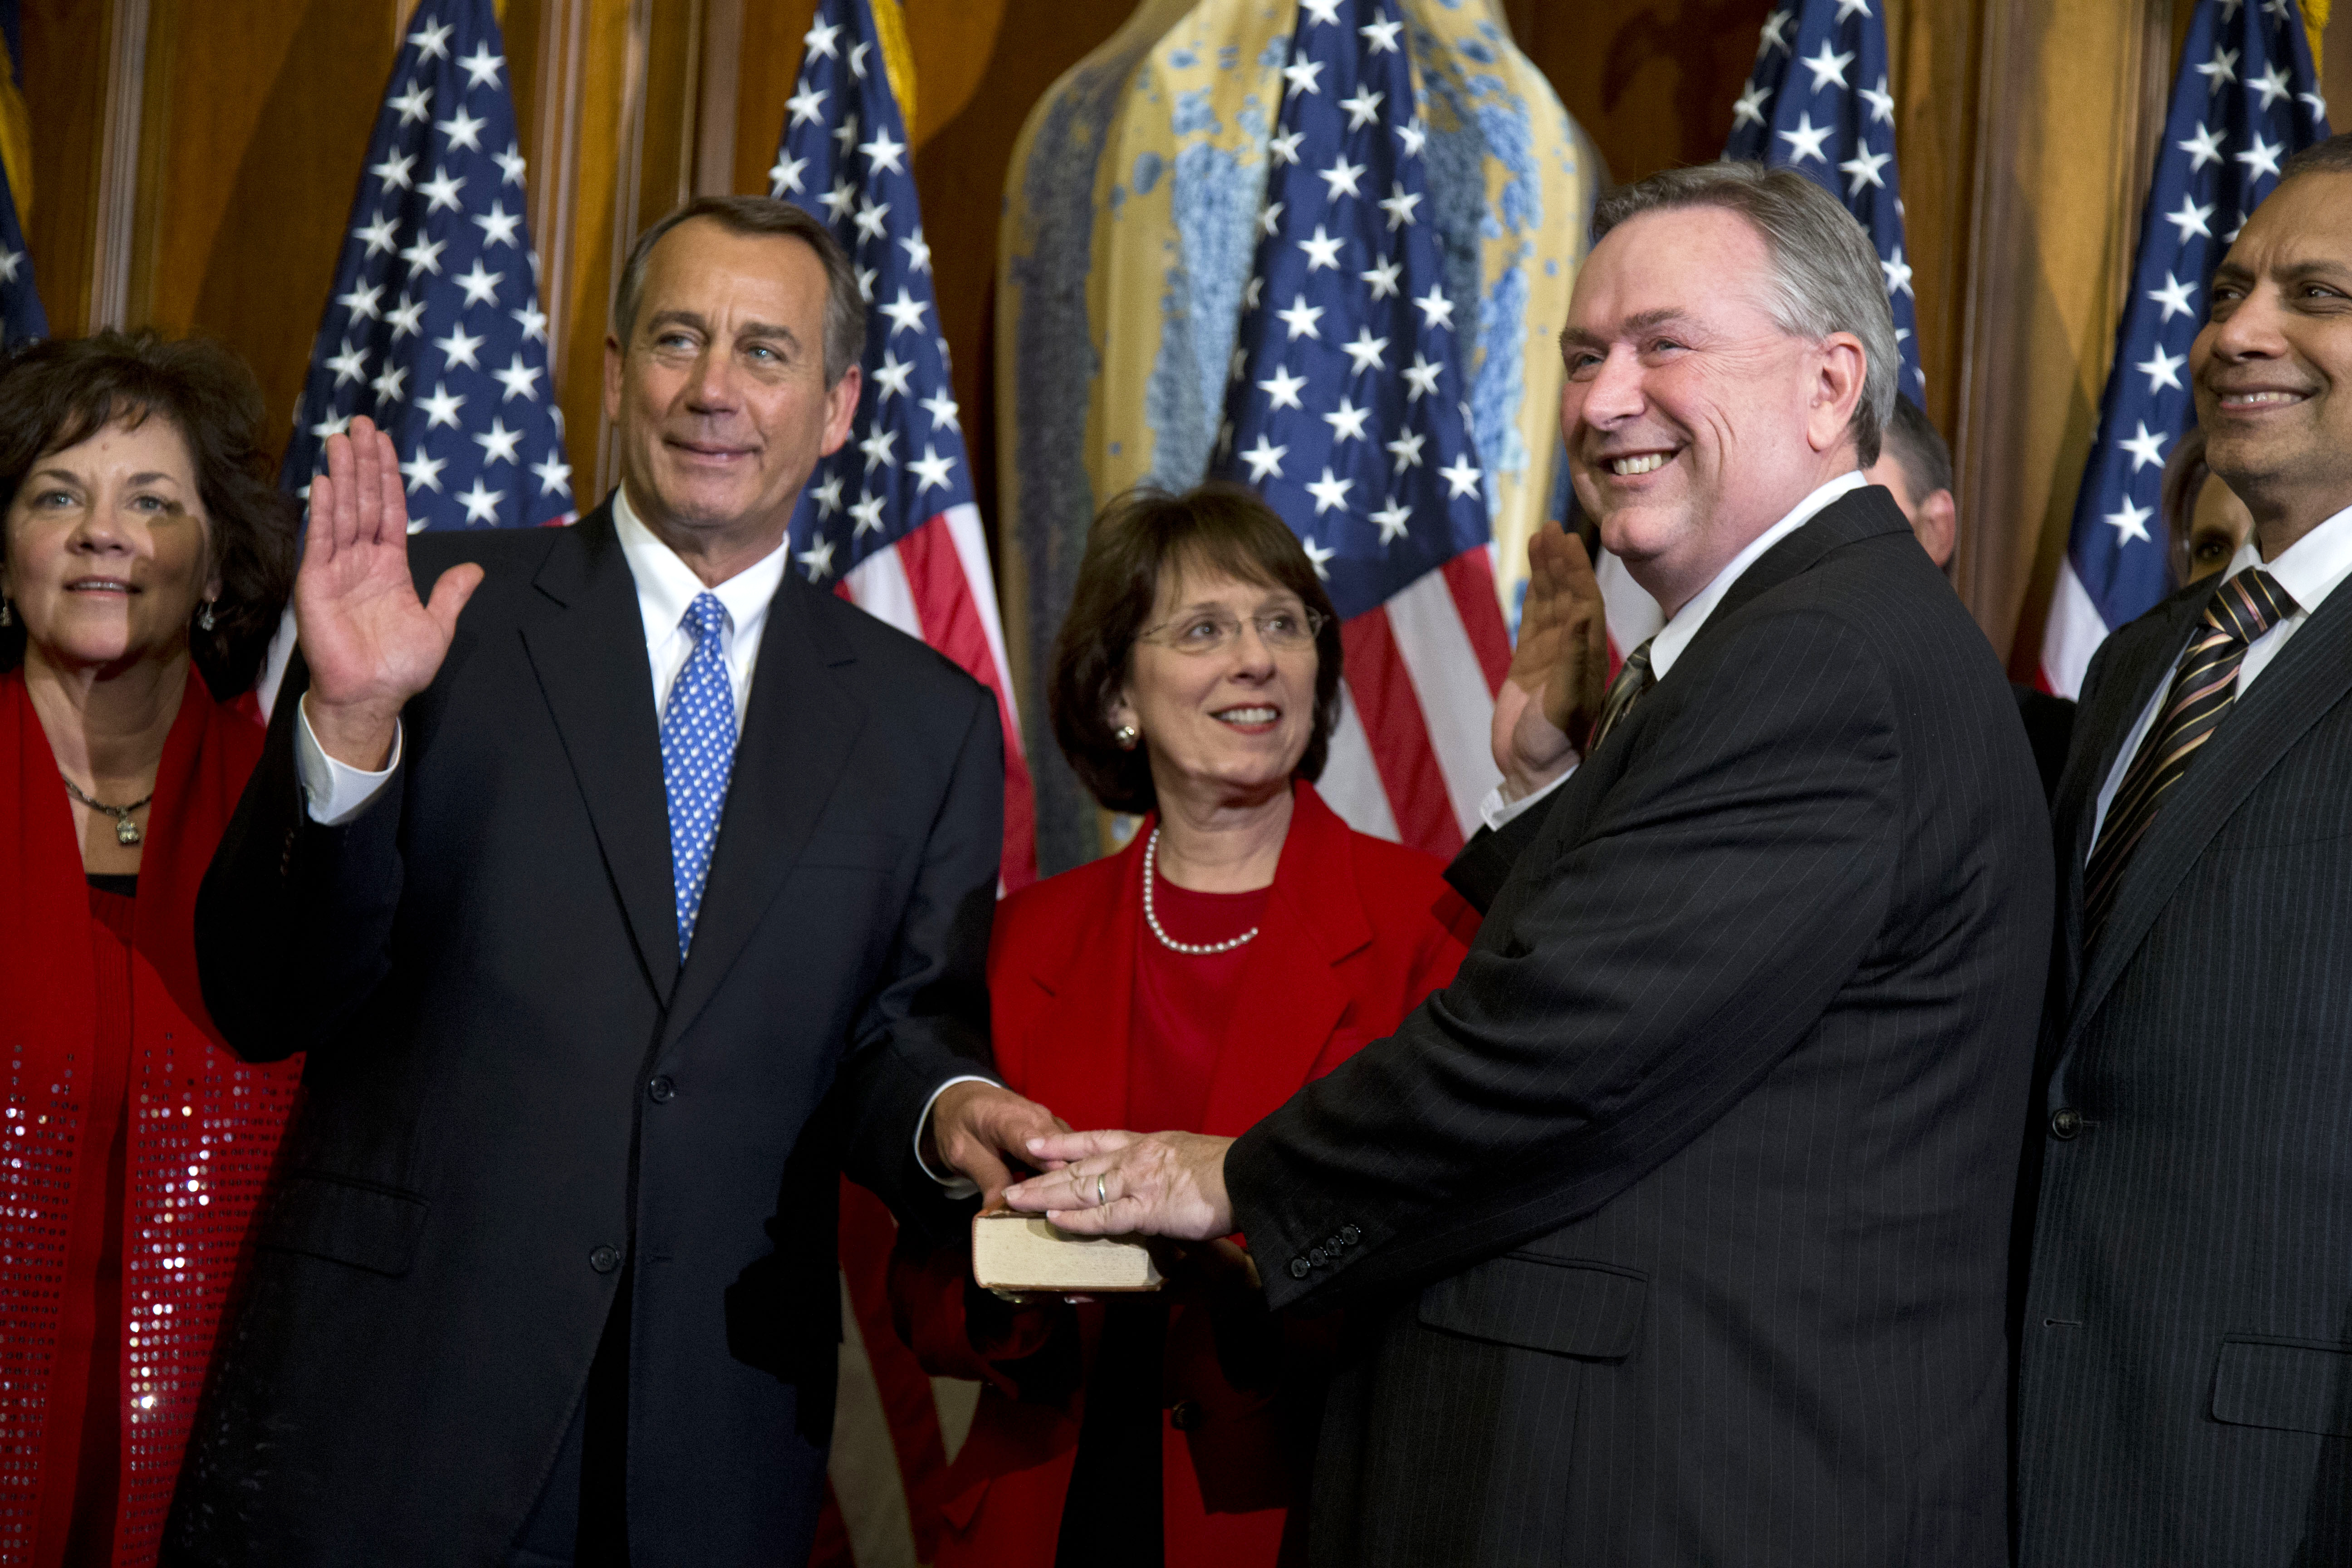 Rep. Steve Stockman, R-Texas, second from right, participates in a mock swearing-in ceremony with Speaker of the House Rep. John Boehner, R-Ohio, for the 113th Congress in Washington, Jan. 3, 2013.